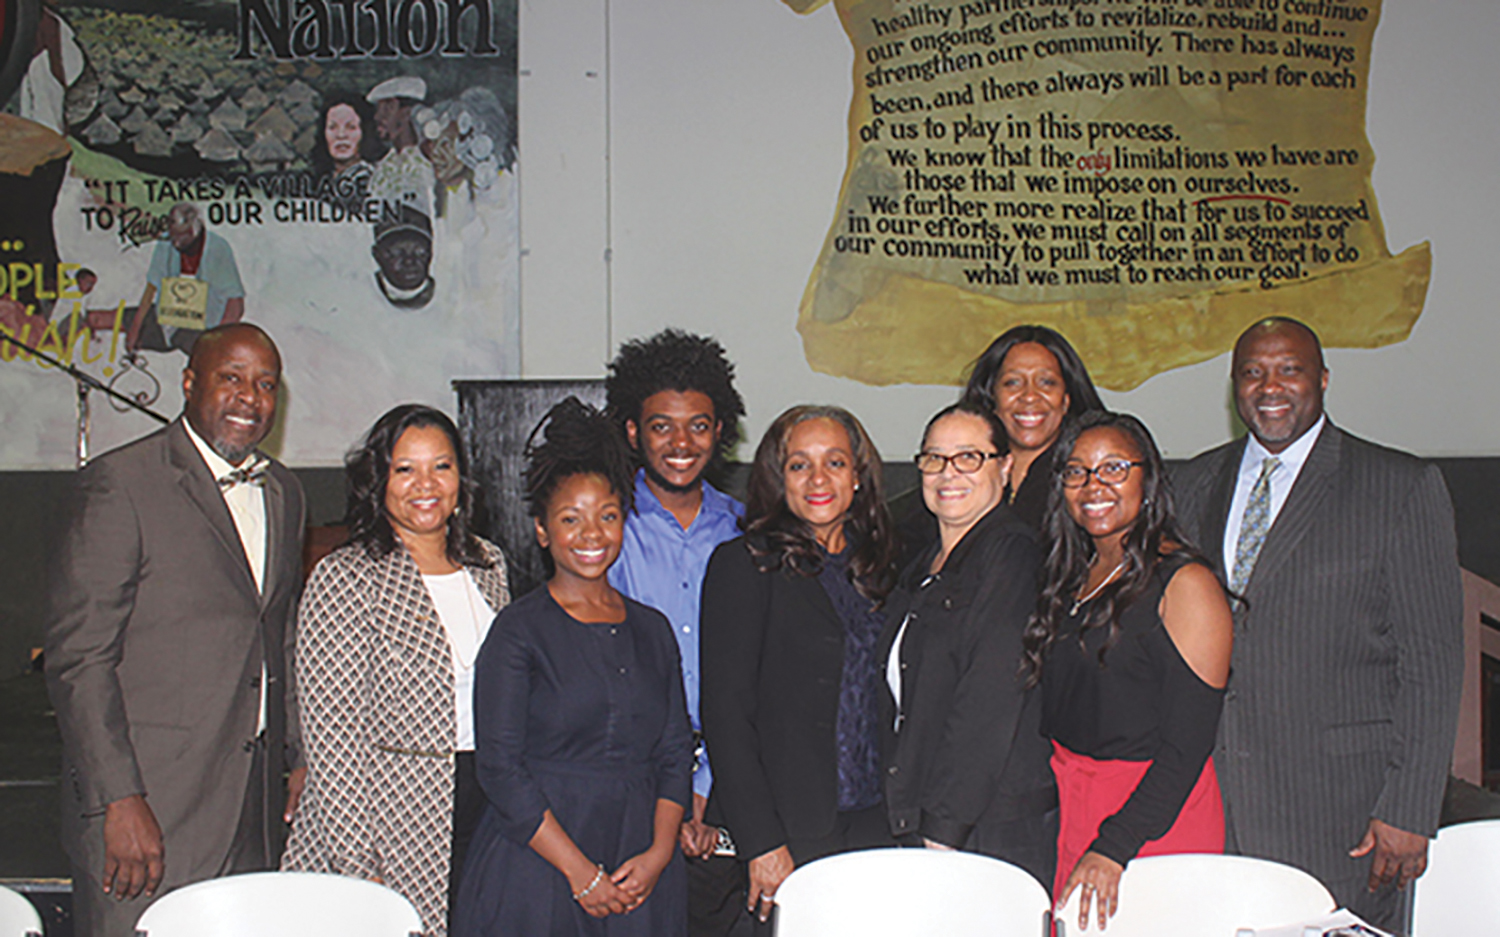 ESSA Houston Black Parents' Town Hall participants – Larry McKinzie, Monica Riley, Lynette Monroe, Treyvon Waddy, Rhonda Skillern-Jones, Dr. Elizabeth Primas, Forward Times Publisher/CEO Karen Carter Richards, Chirelle Riley and Jeffrey L. Boney (Jeffrey L. Boney photo)